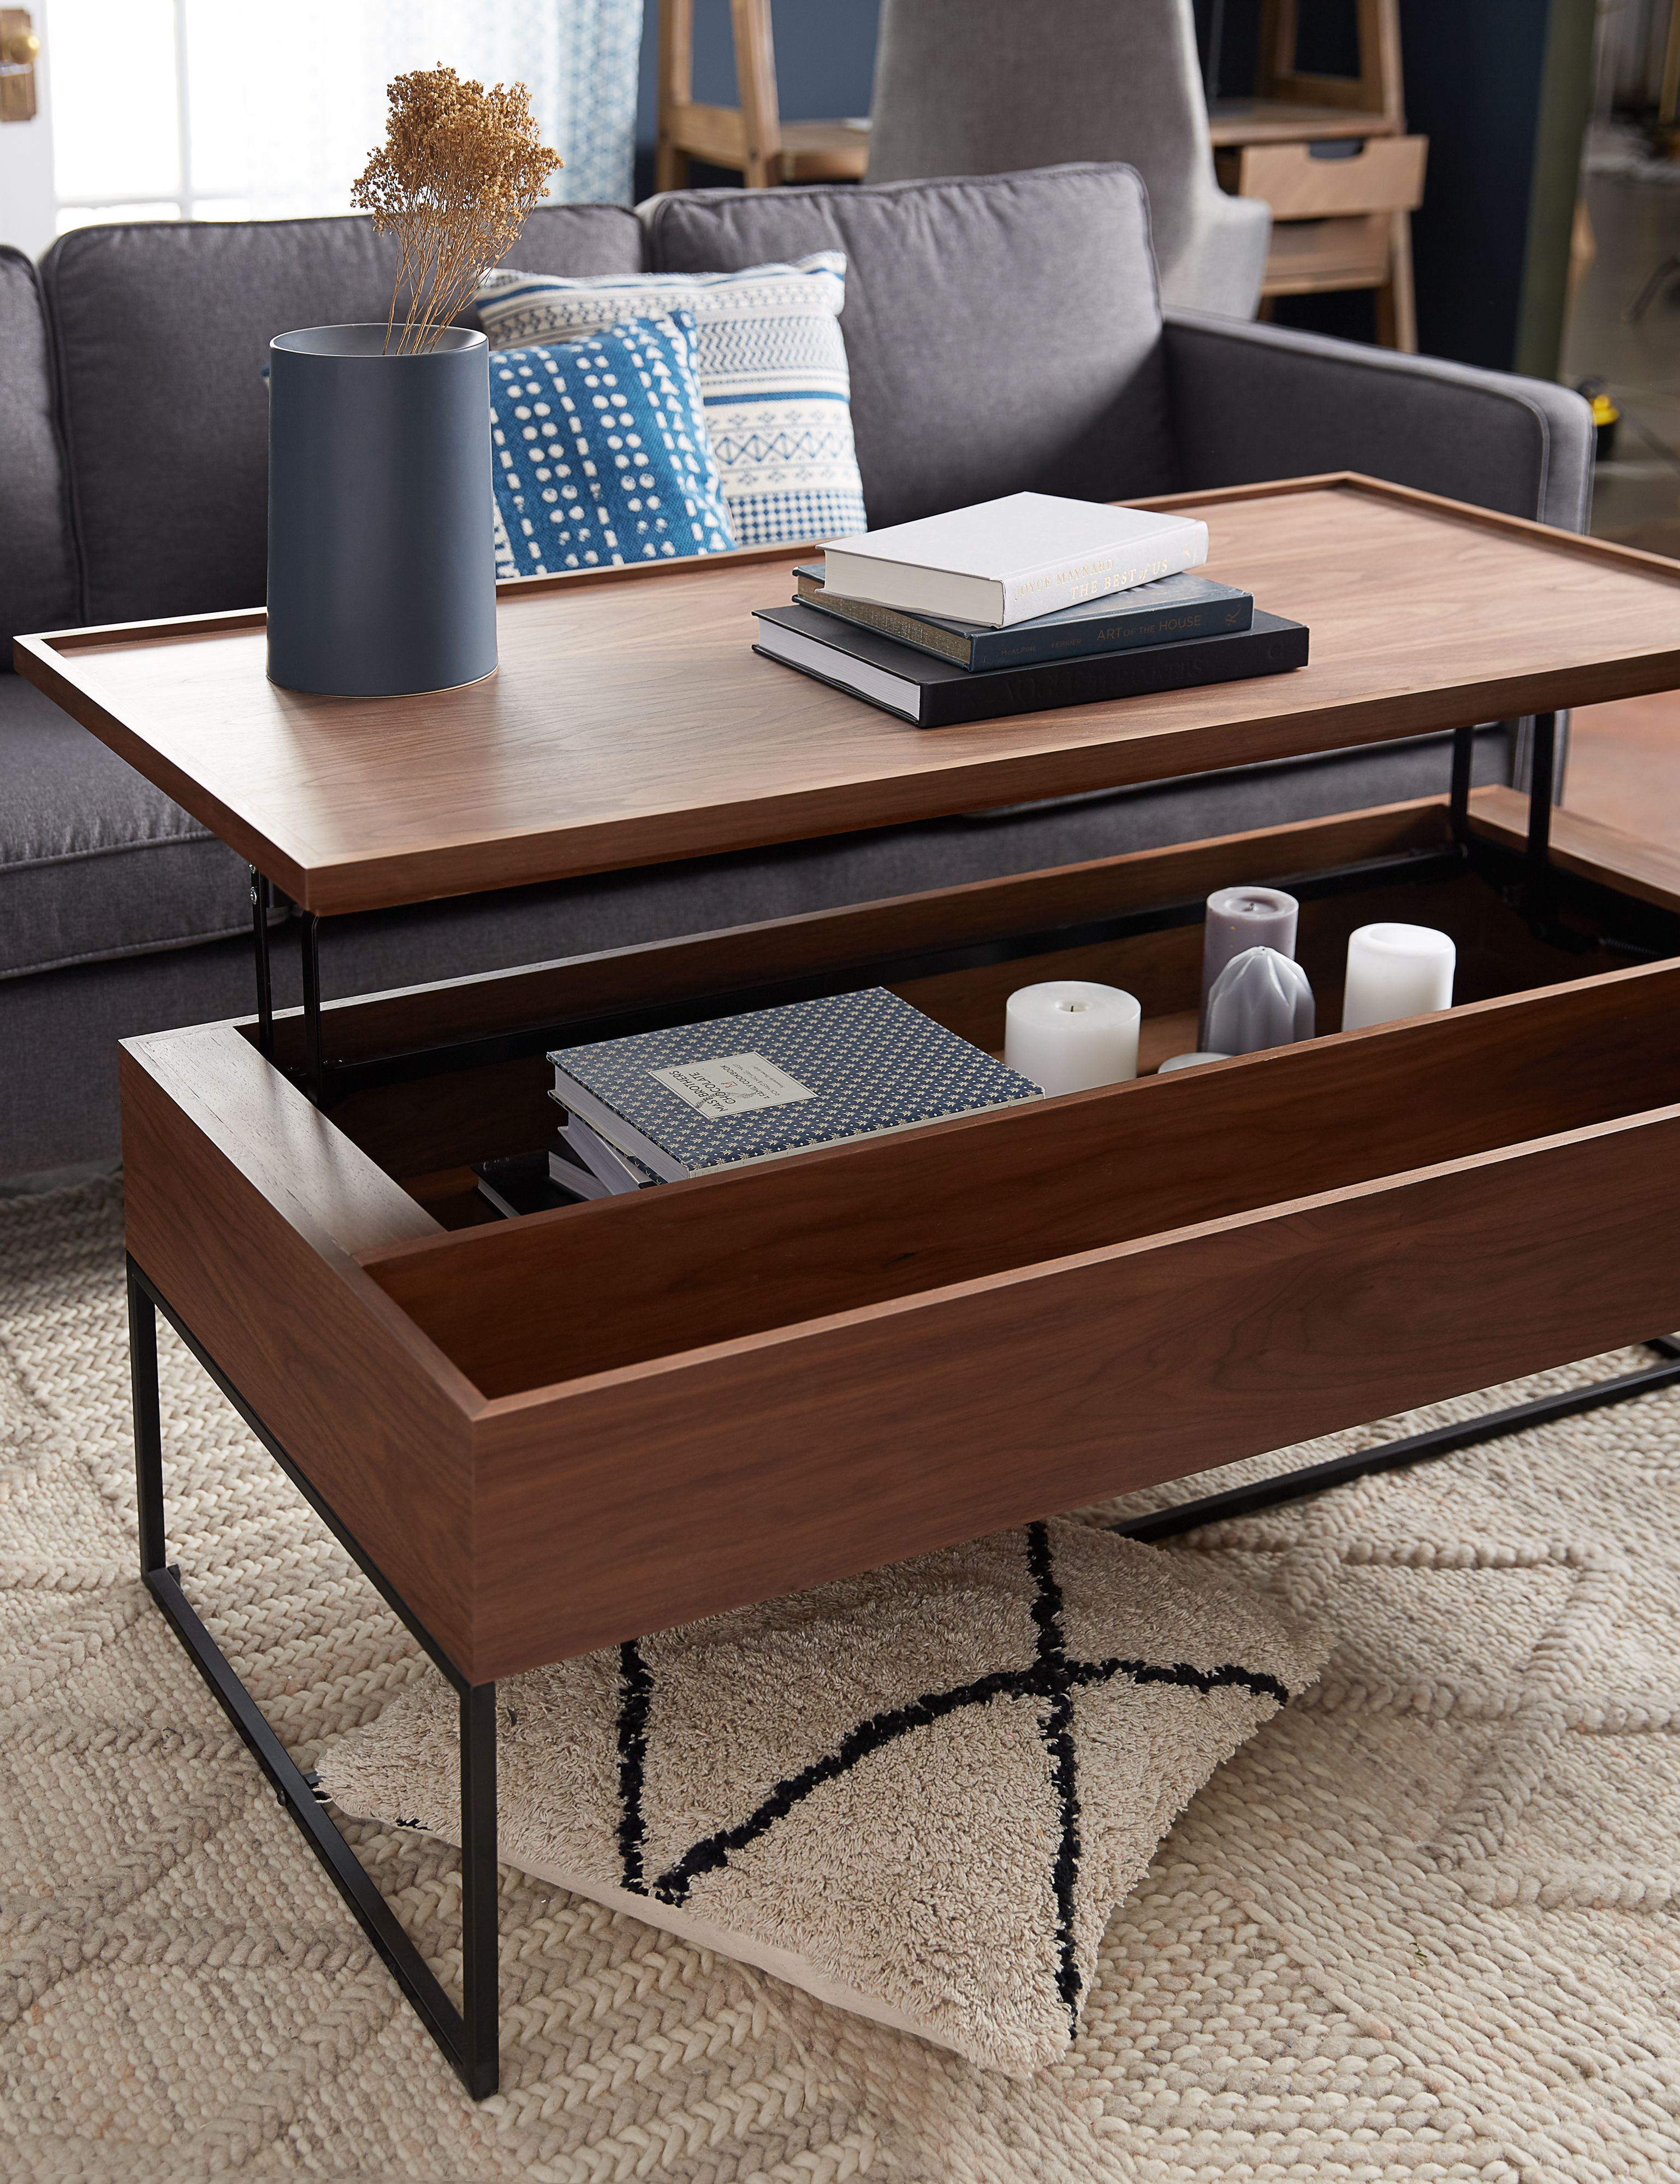 Stupendous Matteo Walnut Coffee Table With Storage 120Cm In 2019 Short Links Chair Design For Home Short Linksinfo